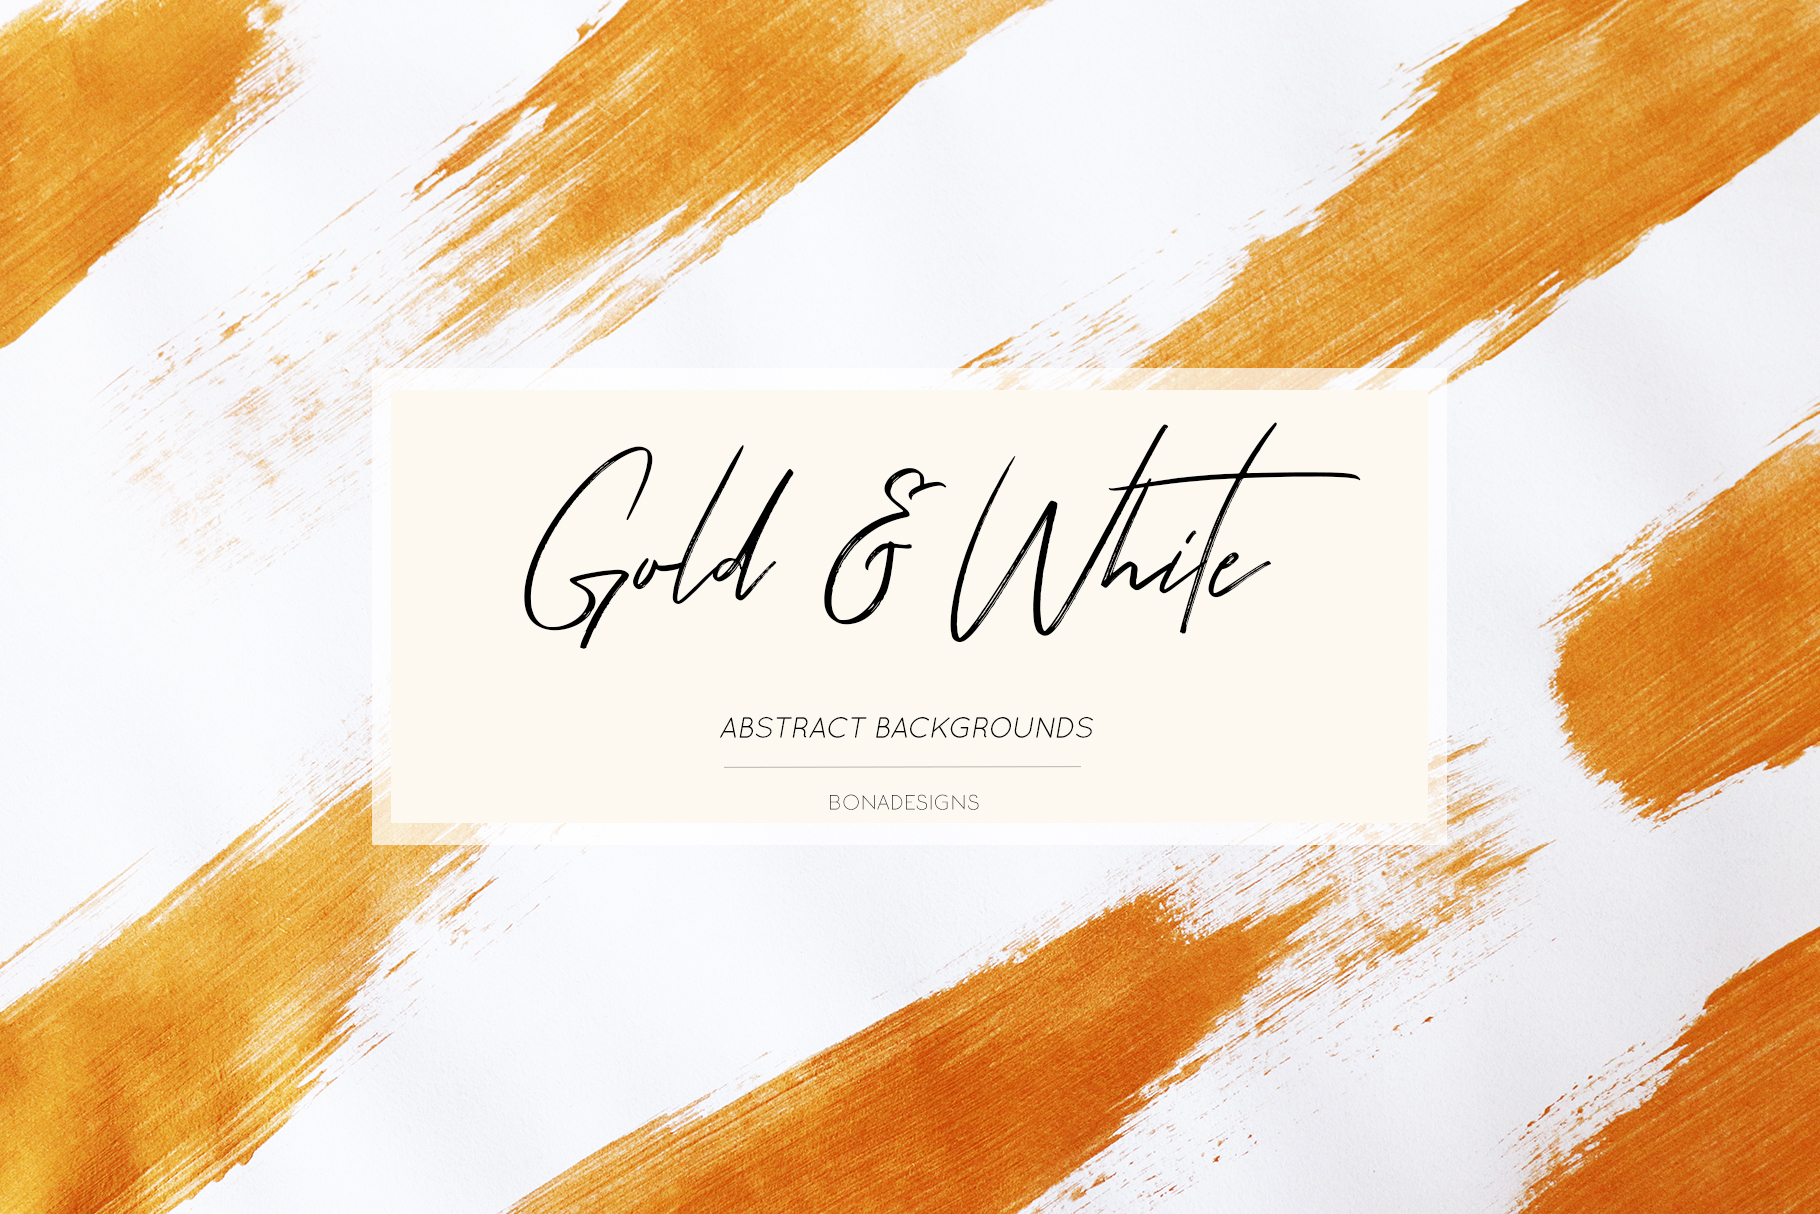 Gold & White Backgrounds, Wedding Invitation Papers example image 1